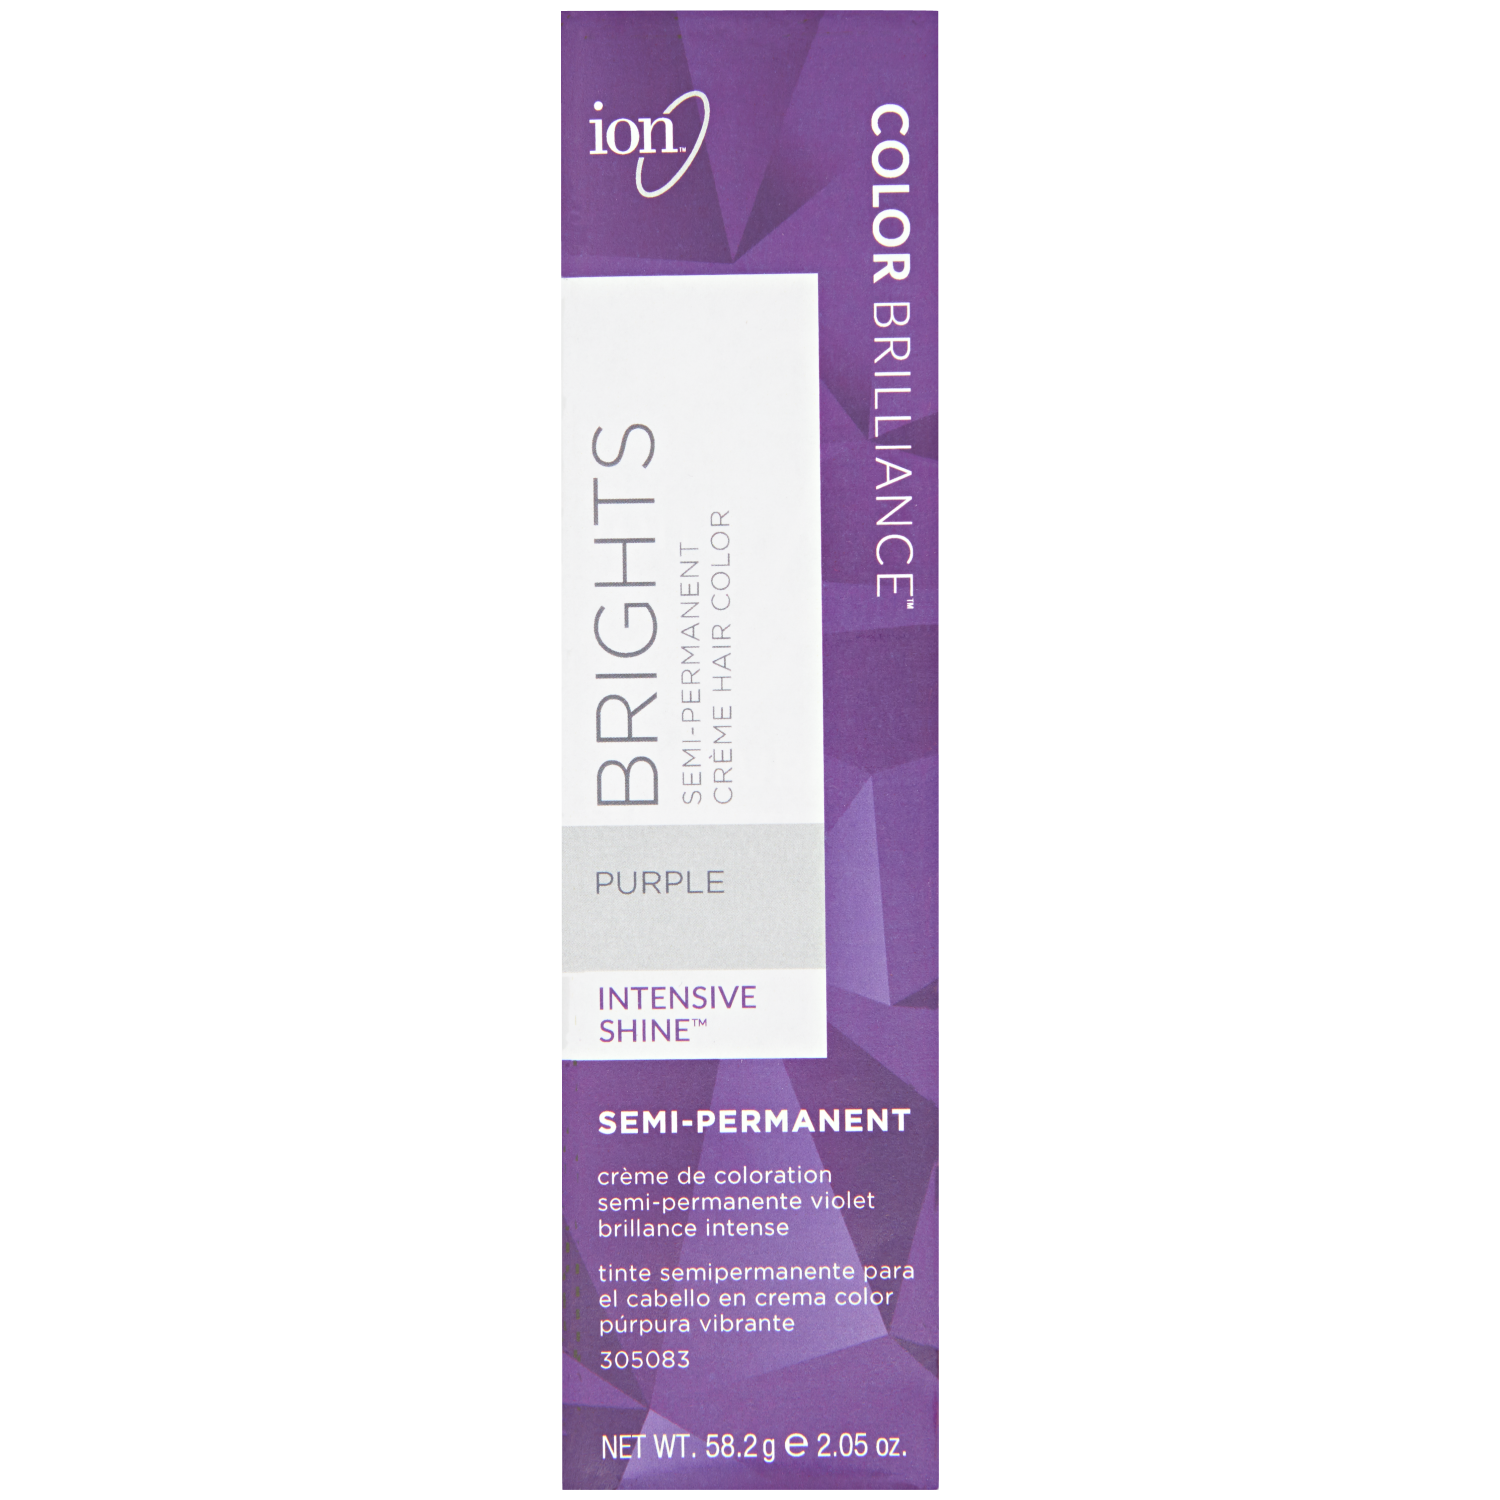 ion Color Brilliance Semi-Permanent Brights Hair Color are high-fashion hair colors designed to give vivid, boldly intense results.